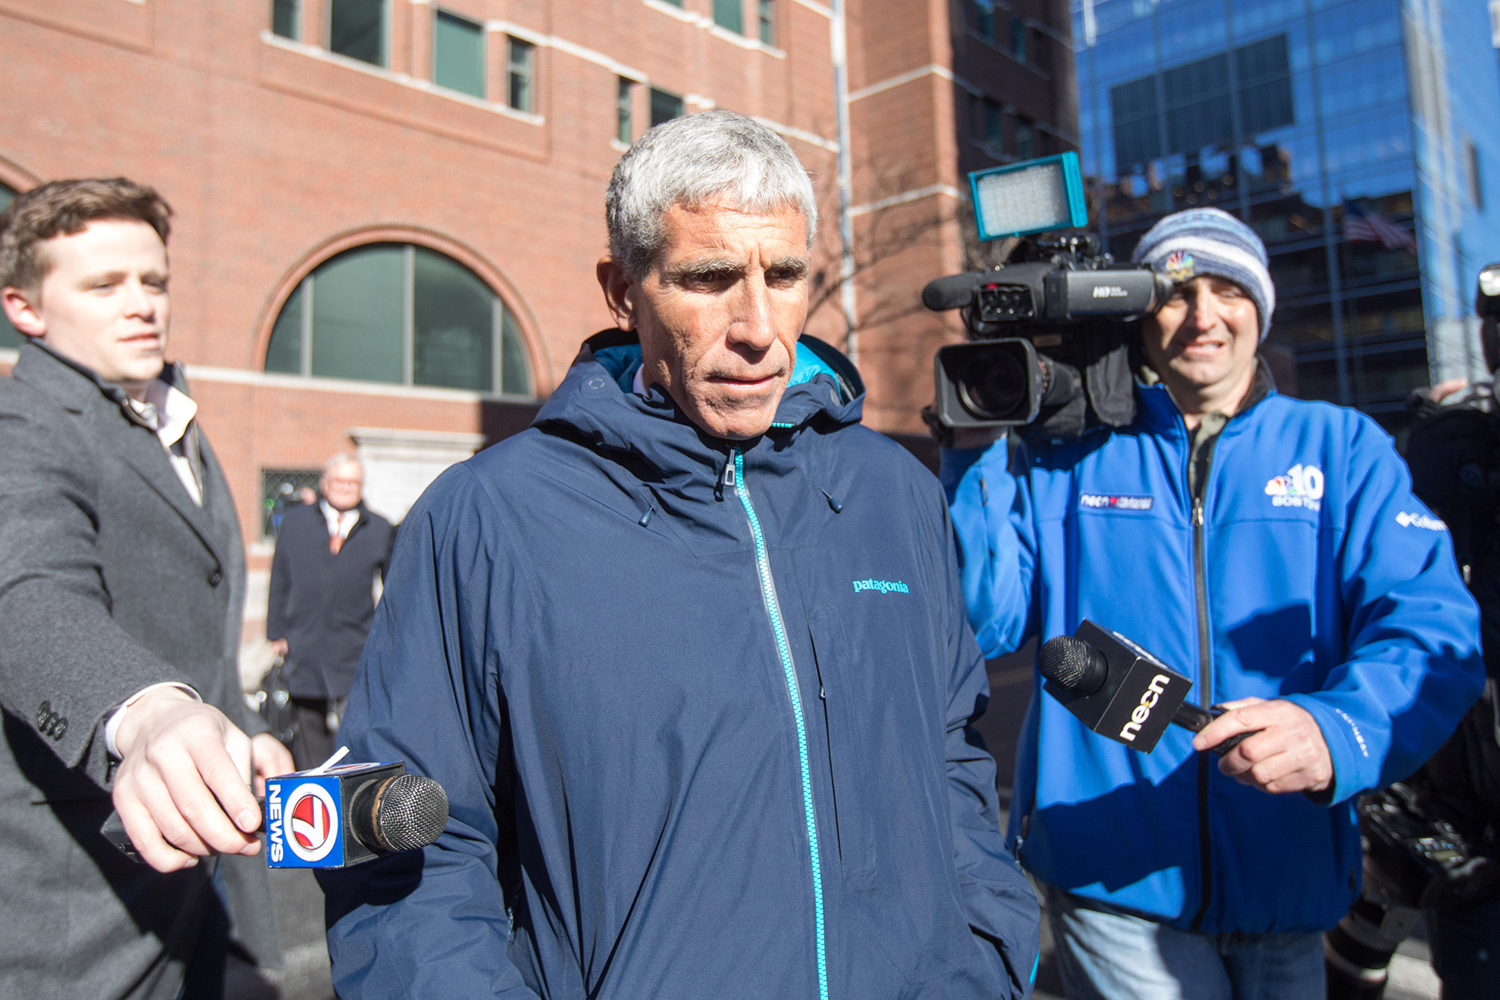 """William """"Rick"""" Singer leaves Boston Federal Court after being charged with racketeering conspiracy, money laundering conspiracy, conspiracy to defraud the United States and obstruction of justice last Tuesday in Boston. Singer is among several charged in an alleged college admissions scam."""